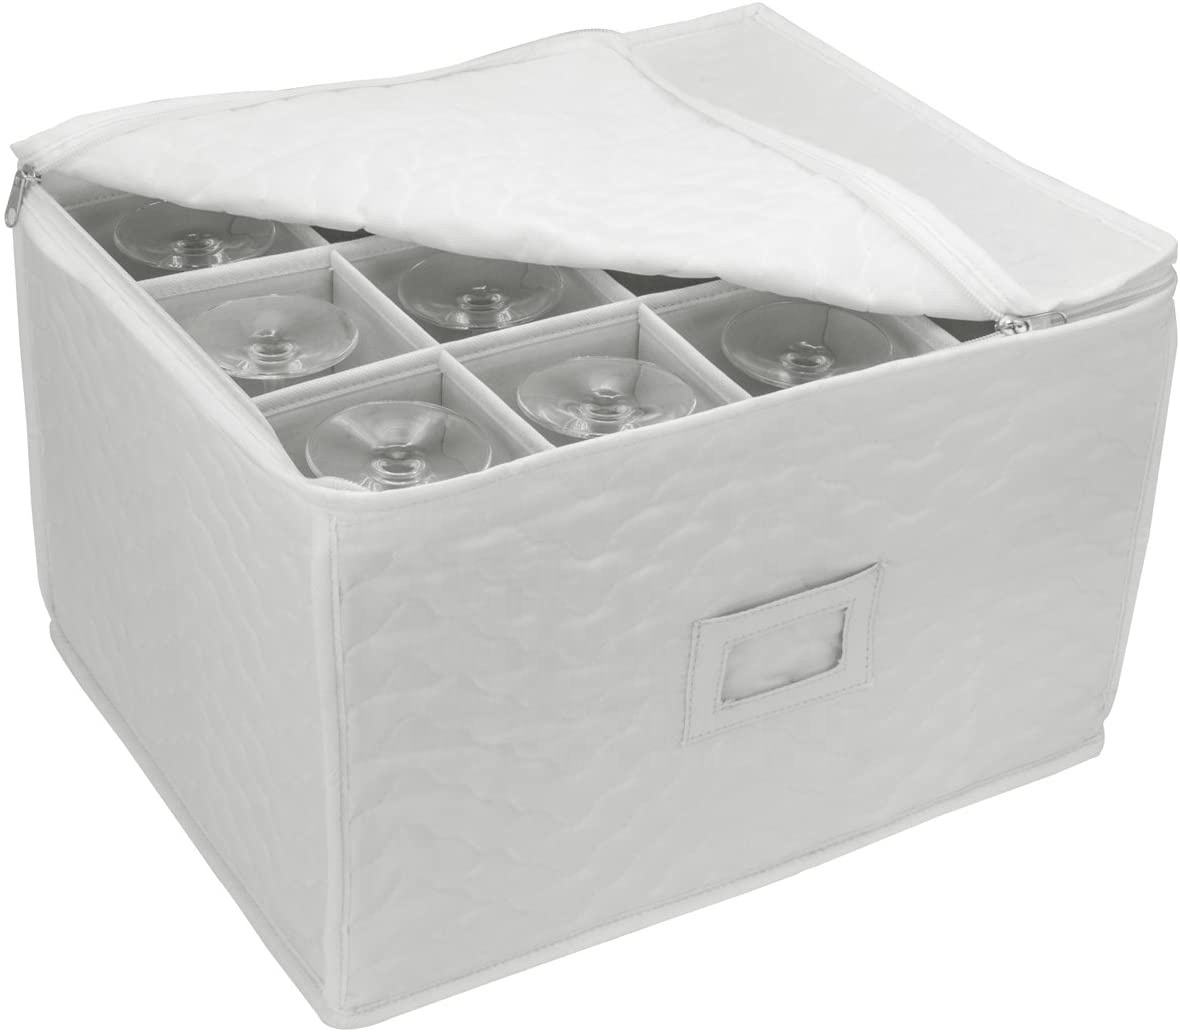 Stemware Storage Chest - Deluxe Quilted Case with Dividers - Service for 12 - Great for Protecting or Transporting Wine Glasses